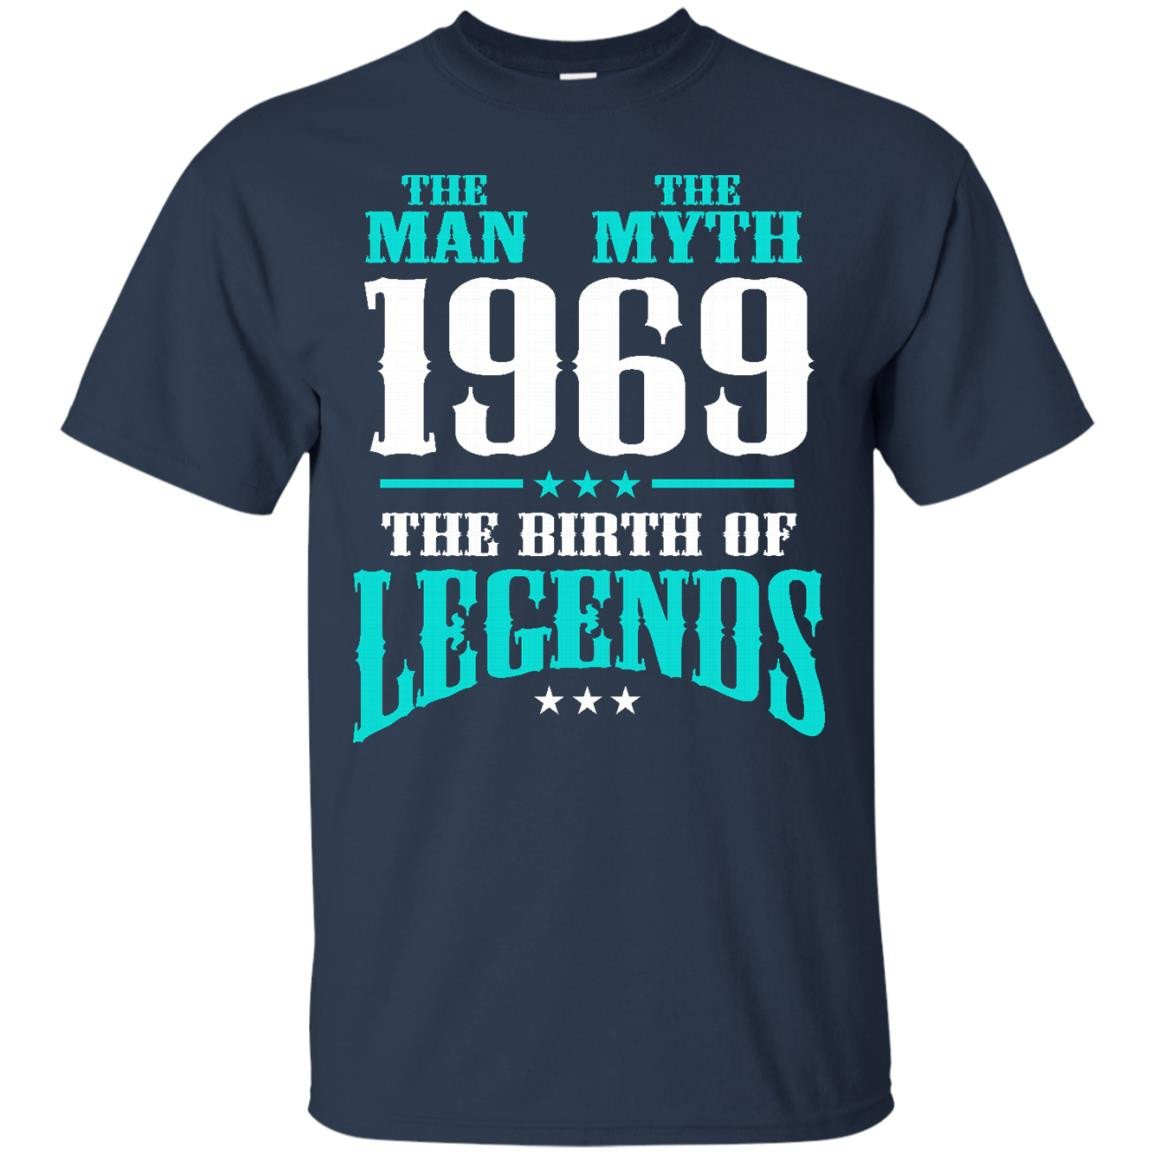 1969 Shirts The Man The Myth The Birth Of Legends T-shirts Hoodies Sweatshirts